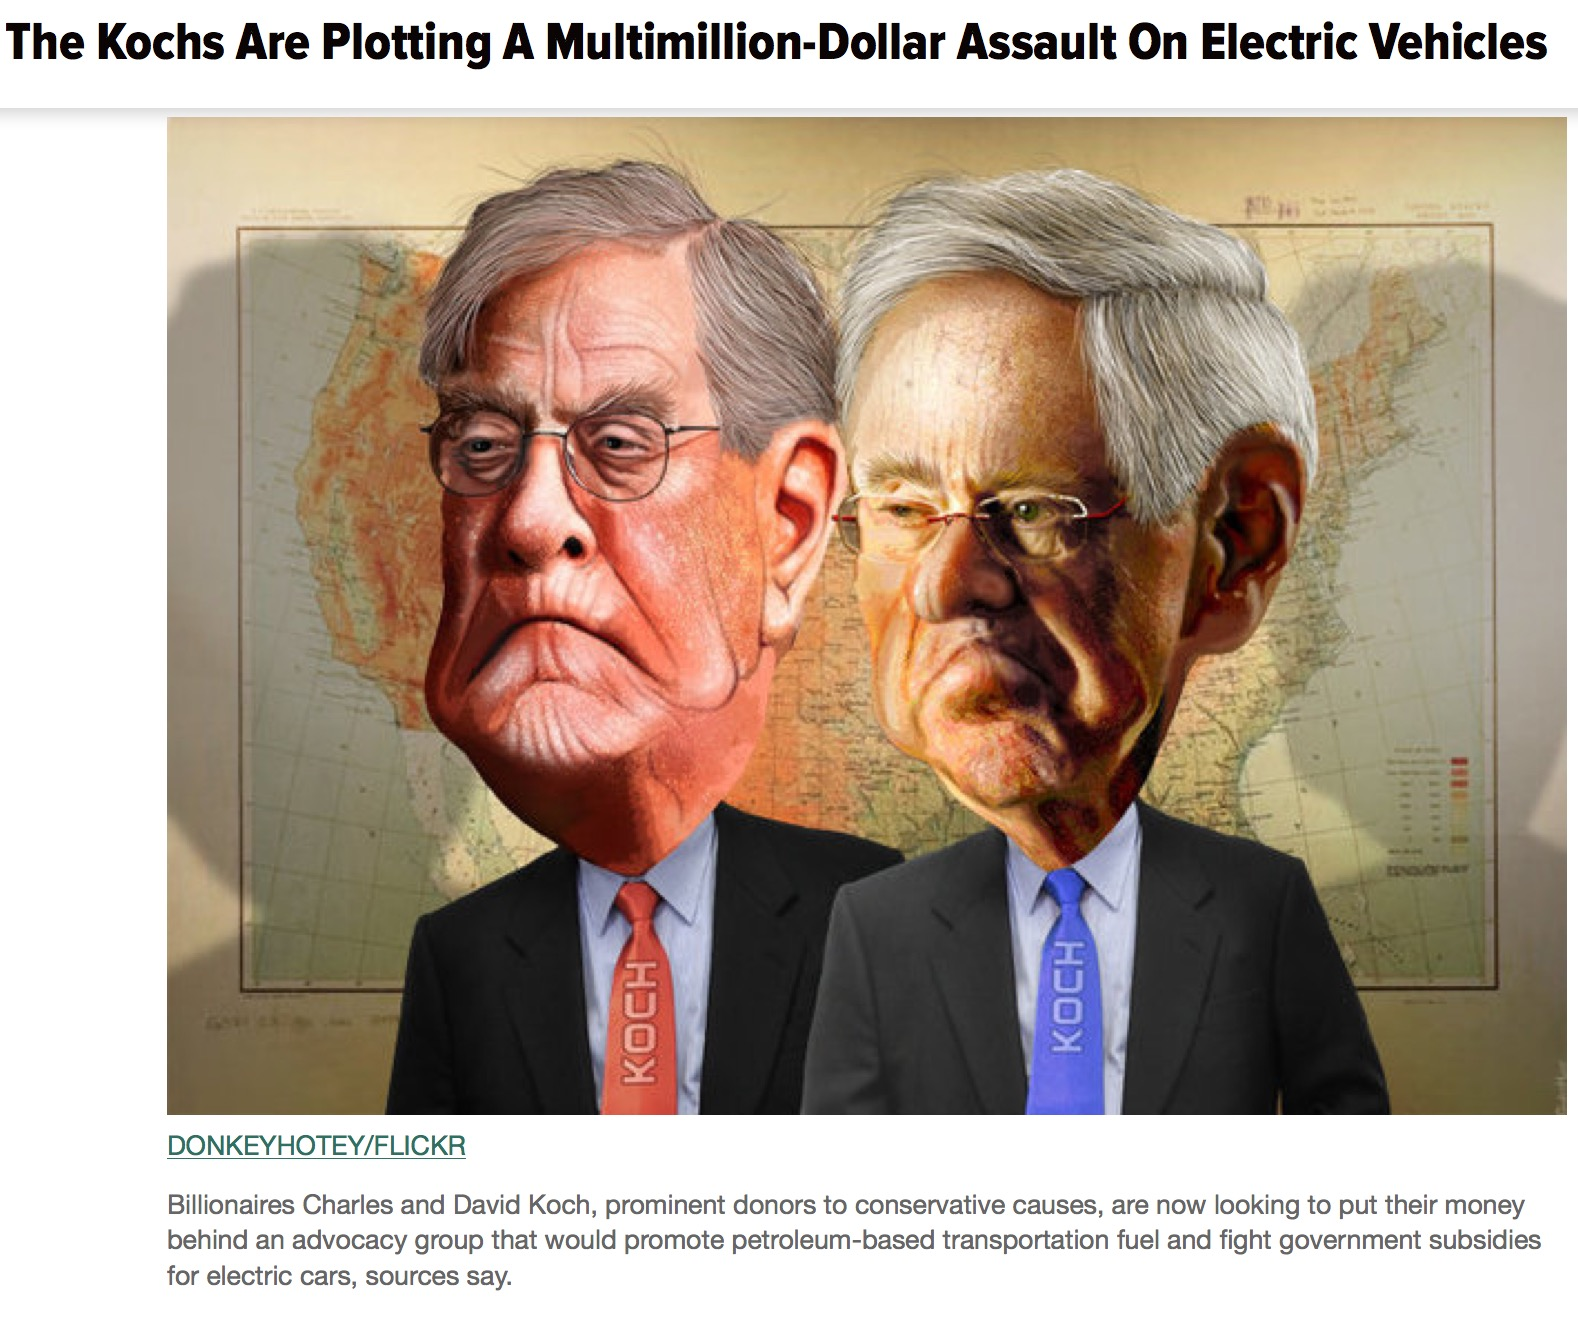 Koch brothers, Satan and the old world